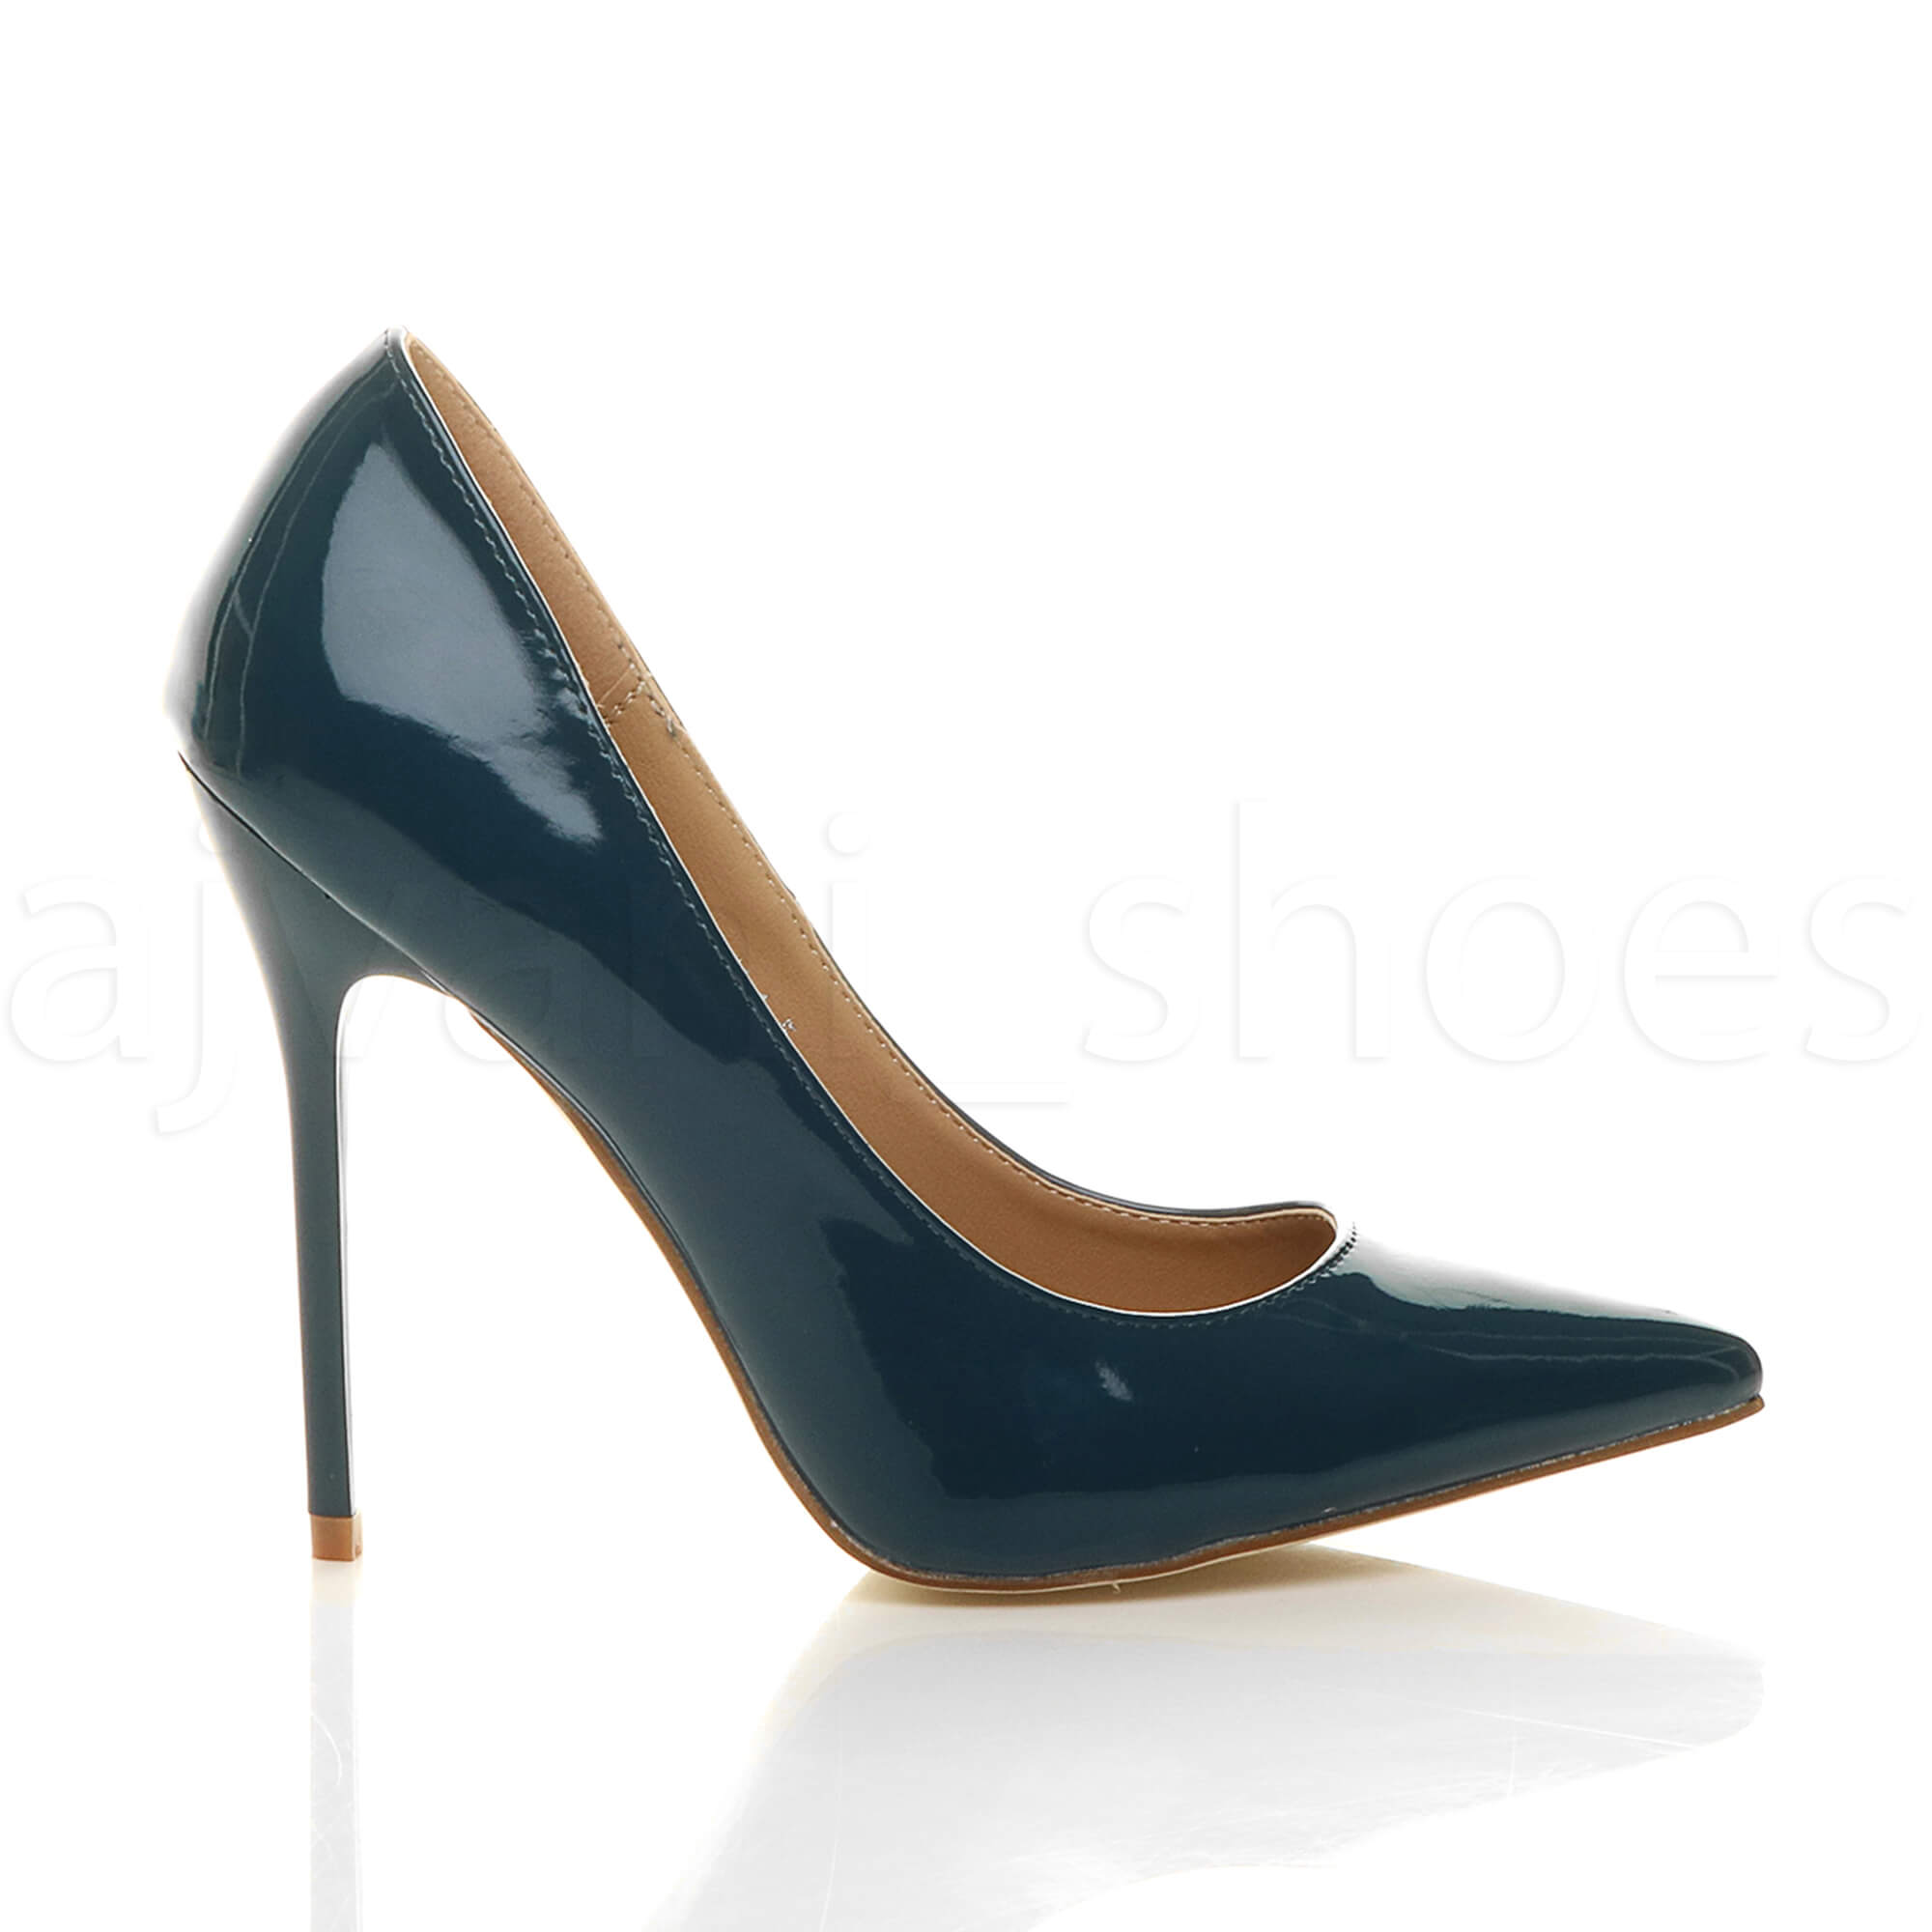 WOMENS-LADIES-HIGH-HEEL-POINTED-CONTRAST-COURT-SMART-PARTY-WORK-SHOES-PUMPS-SIZE thumbnail 232